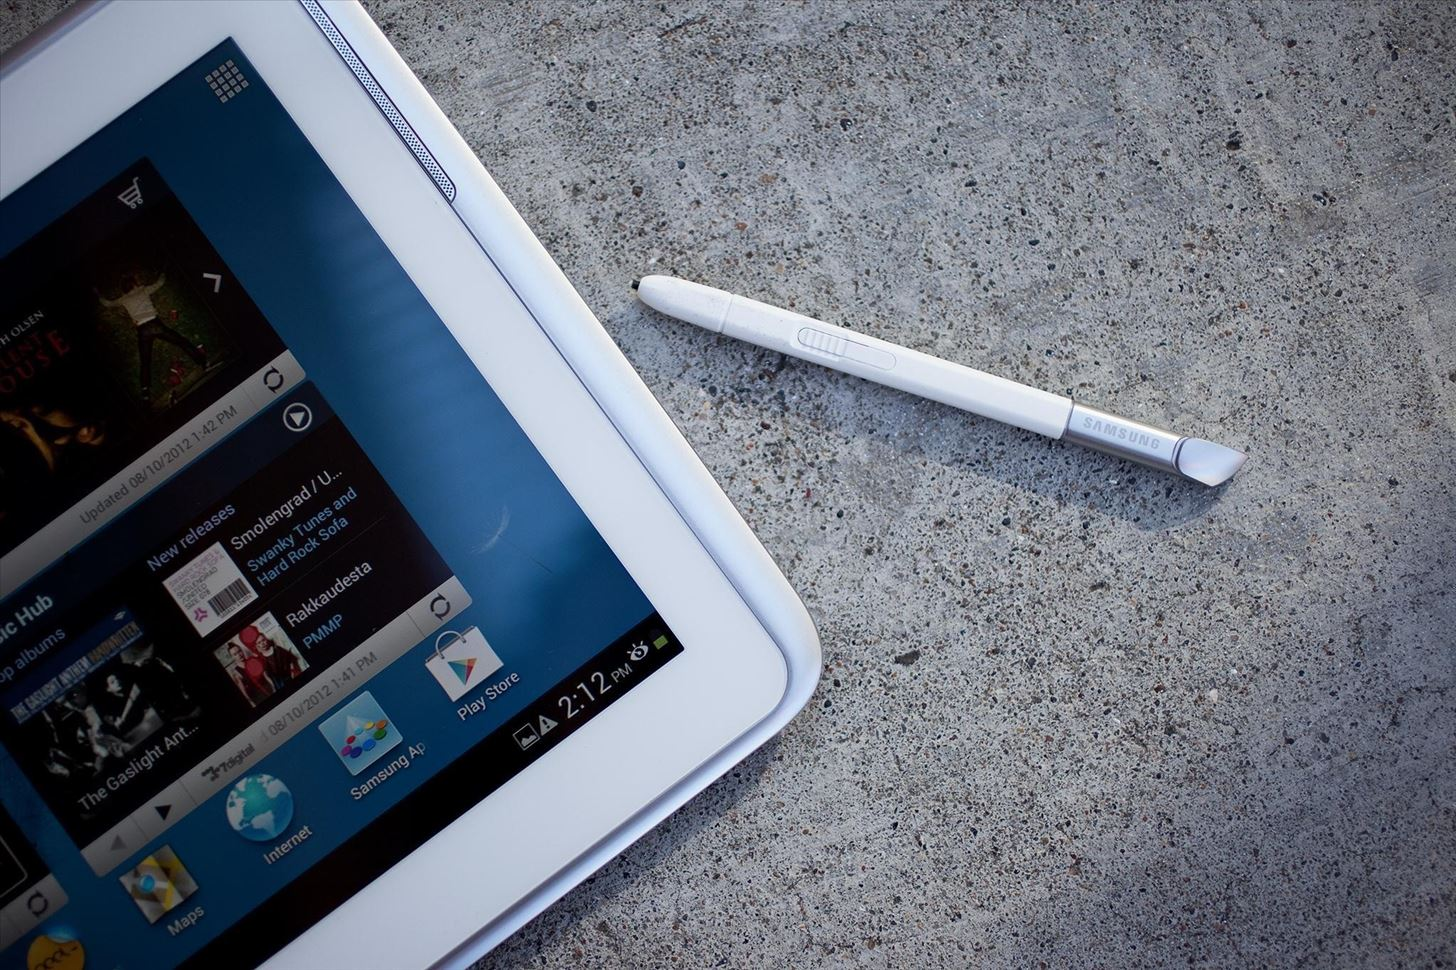 How to Adjust Your Samsung Galaxy Note's S-Pen Sensitivity for Better Touch Response